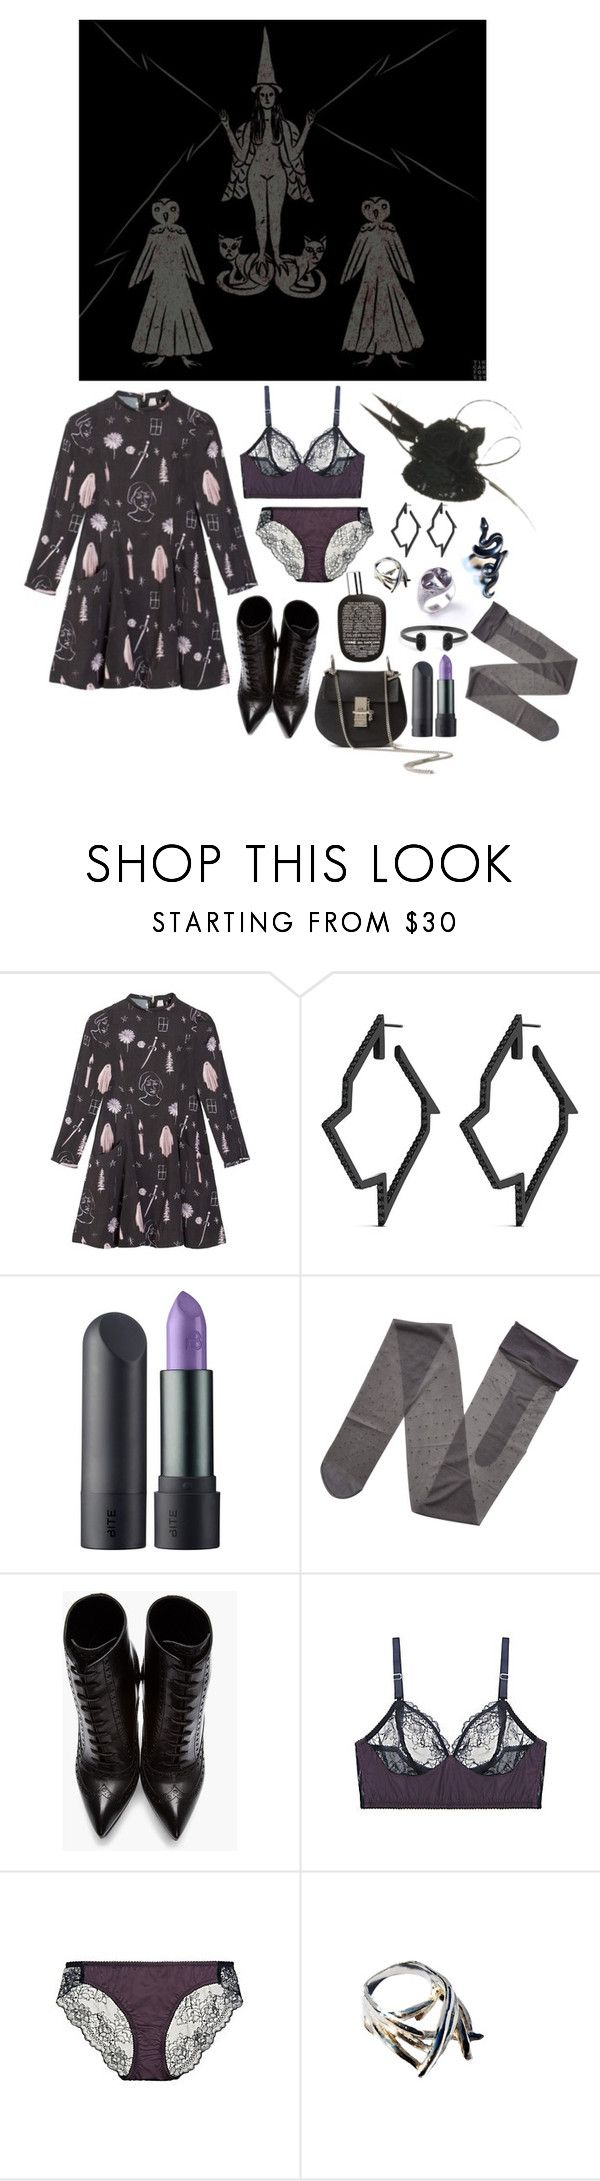 """What is a witch"" by ghoulnextdoor ❤ liked on Polyvore featuring Samantha Pleet, Lynn Ban, Bite, Gerbe, Yves Saint Laurent, Fortnight and Kendra Scott"